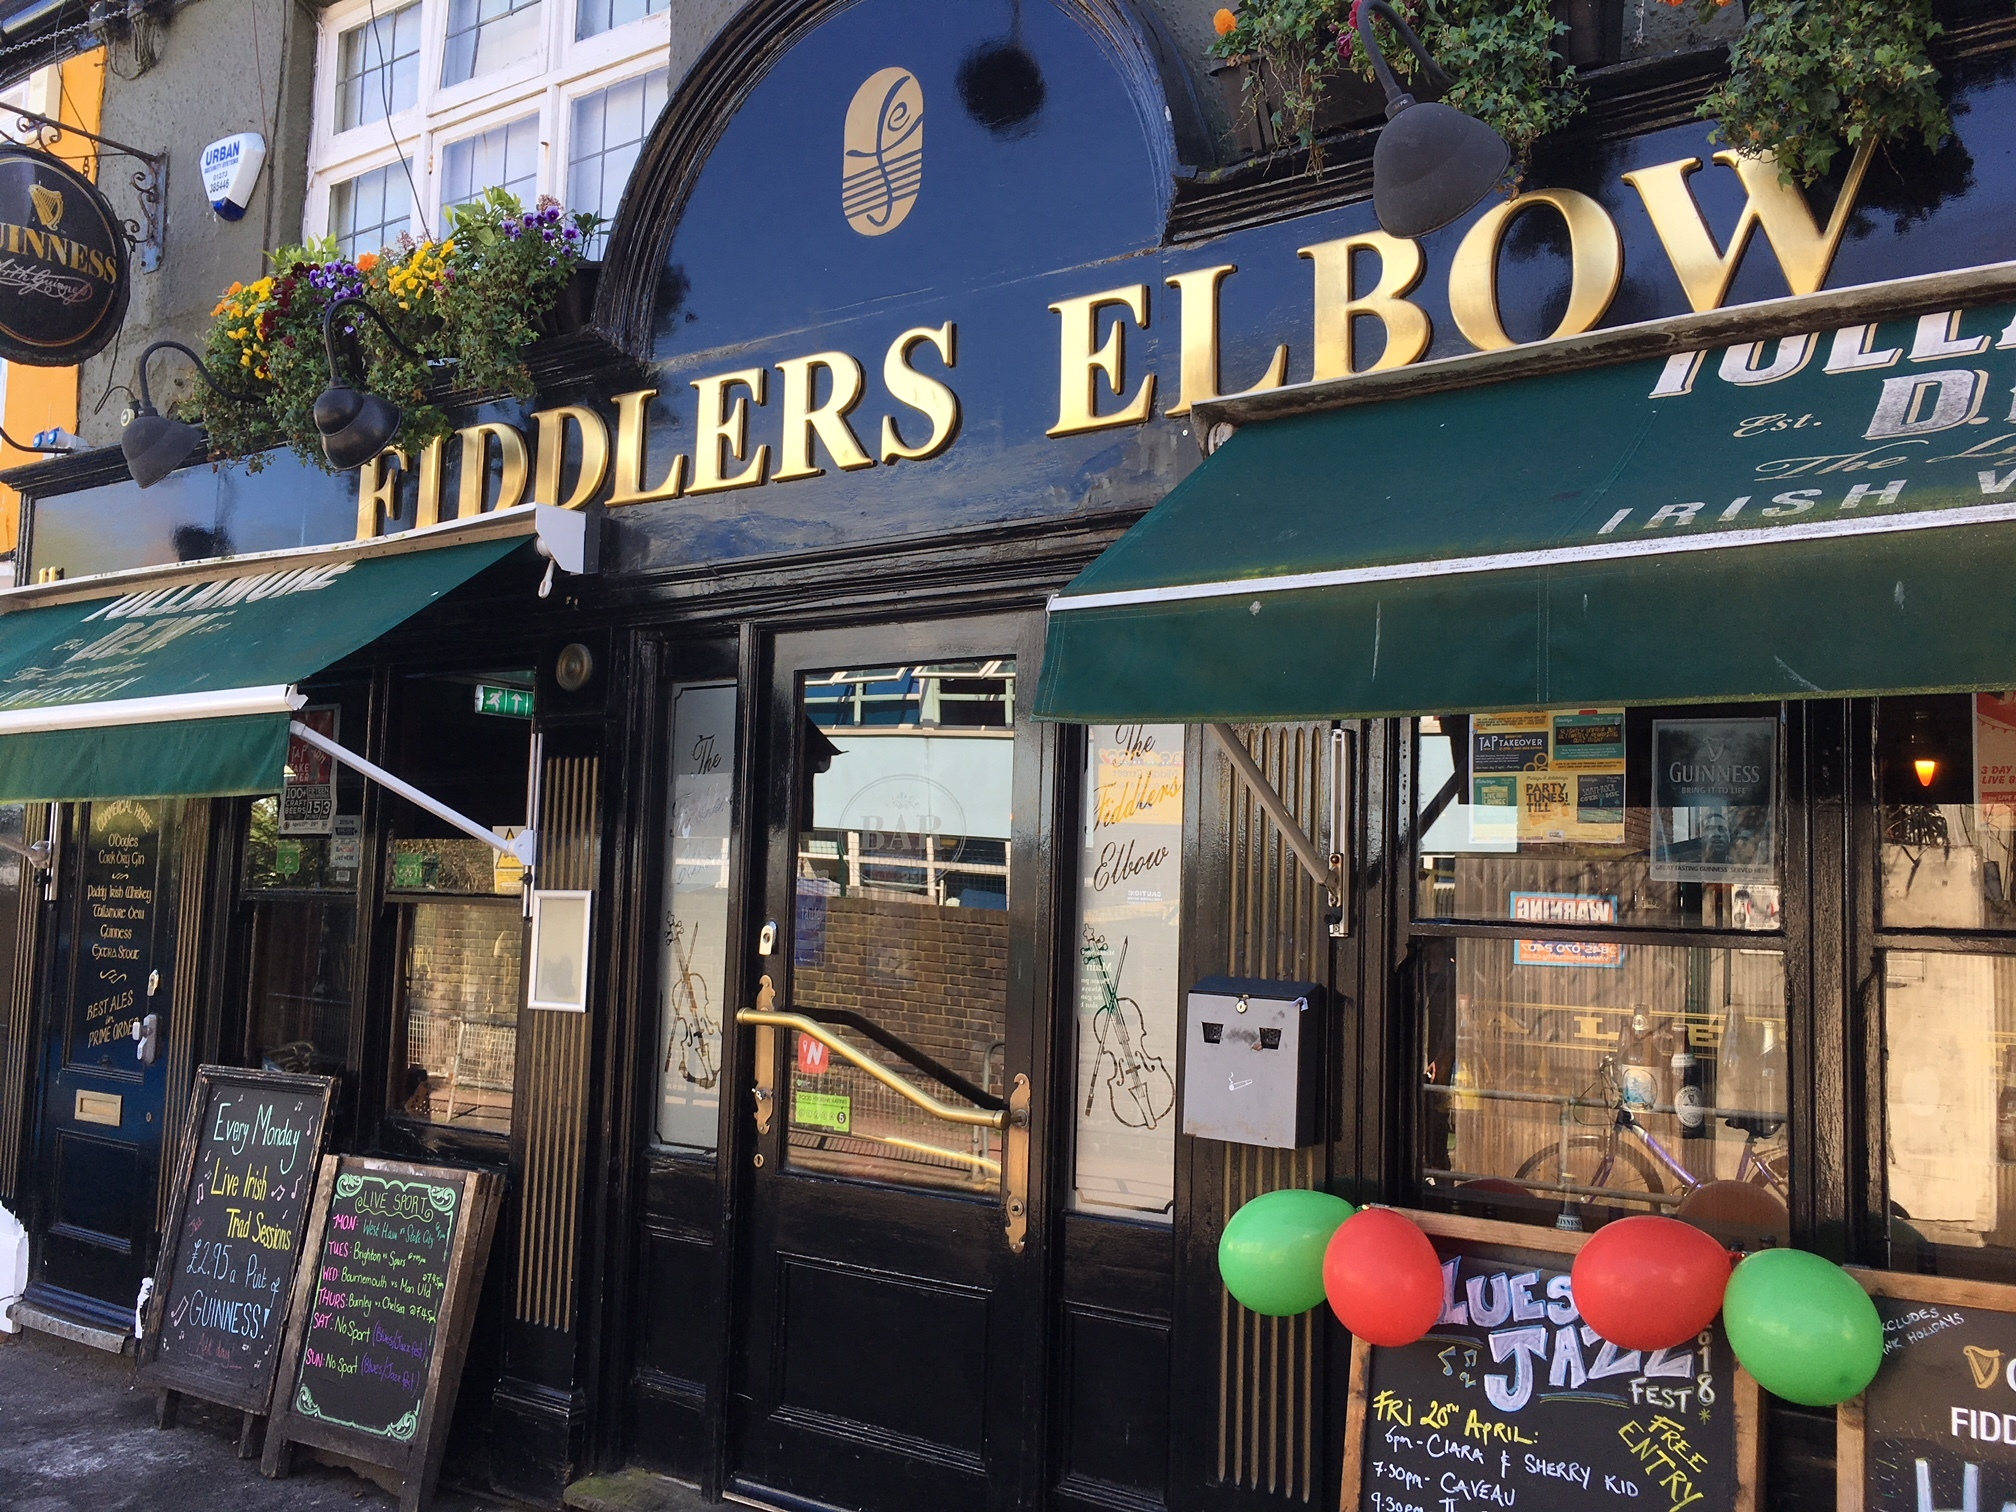 The Fiddler's Elbow pub in Brighton